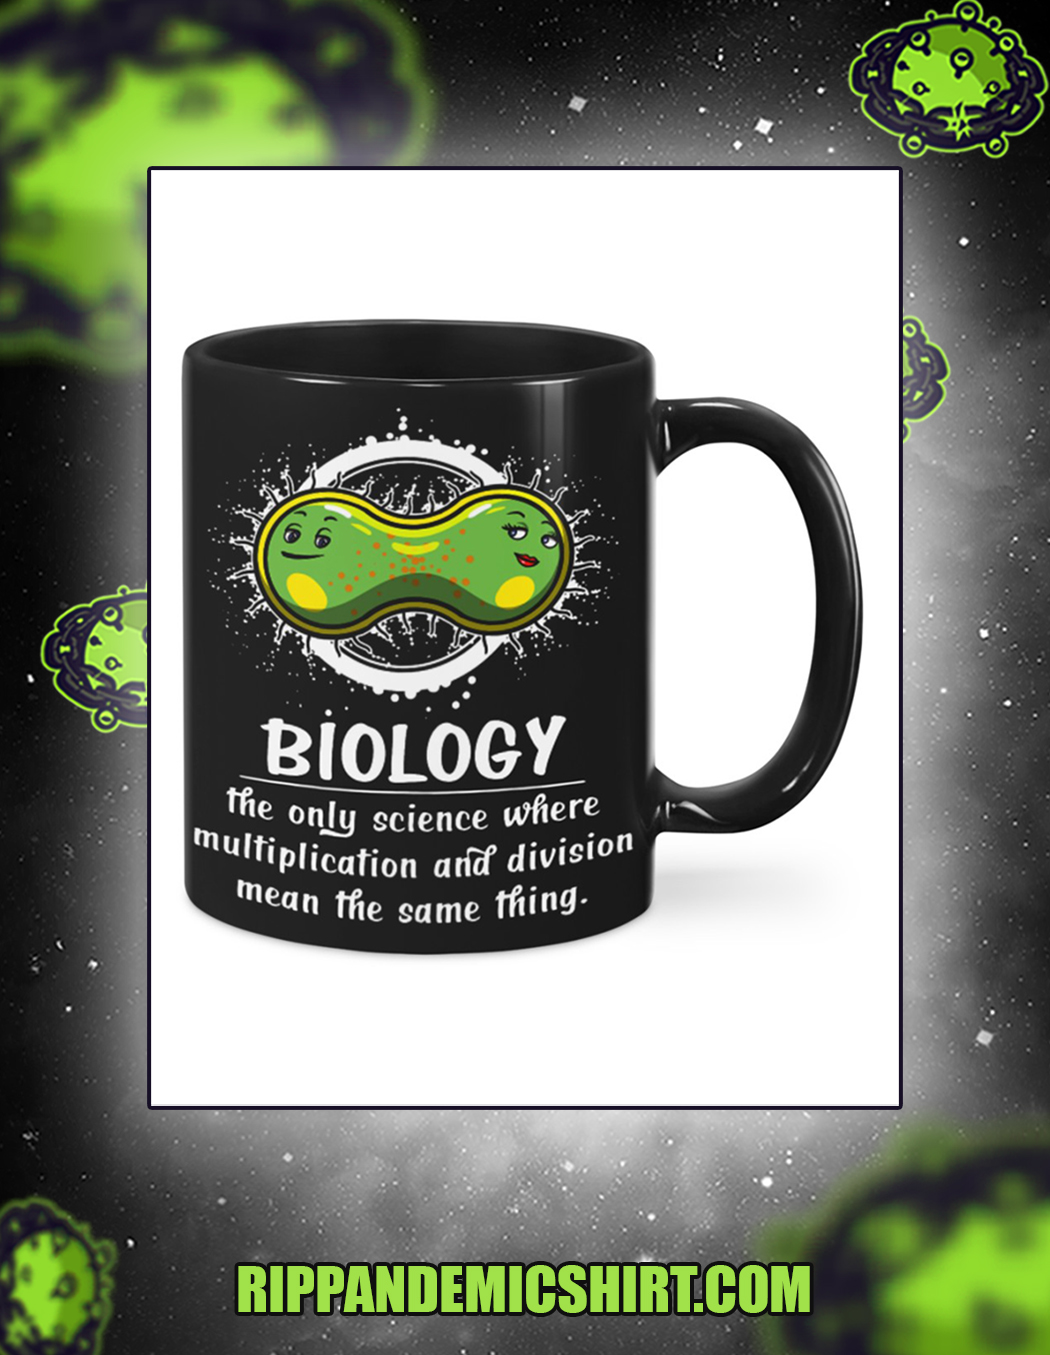 Biology the only science where multiplication and dividion mean the same thing mug 1